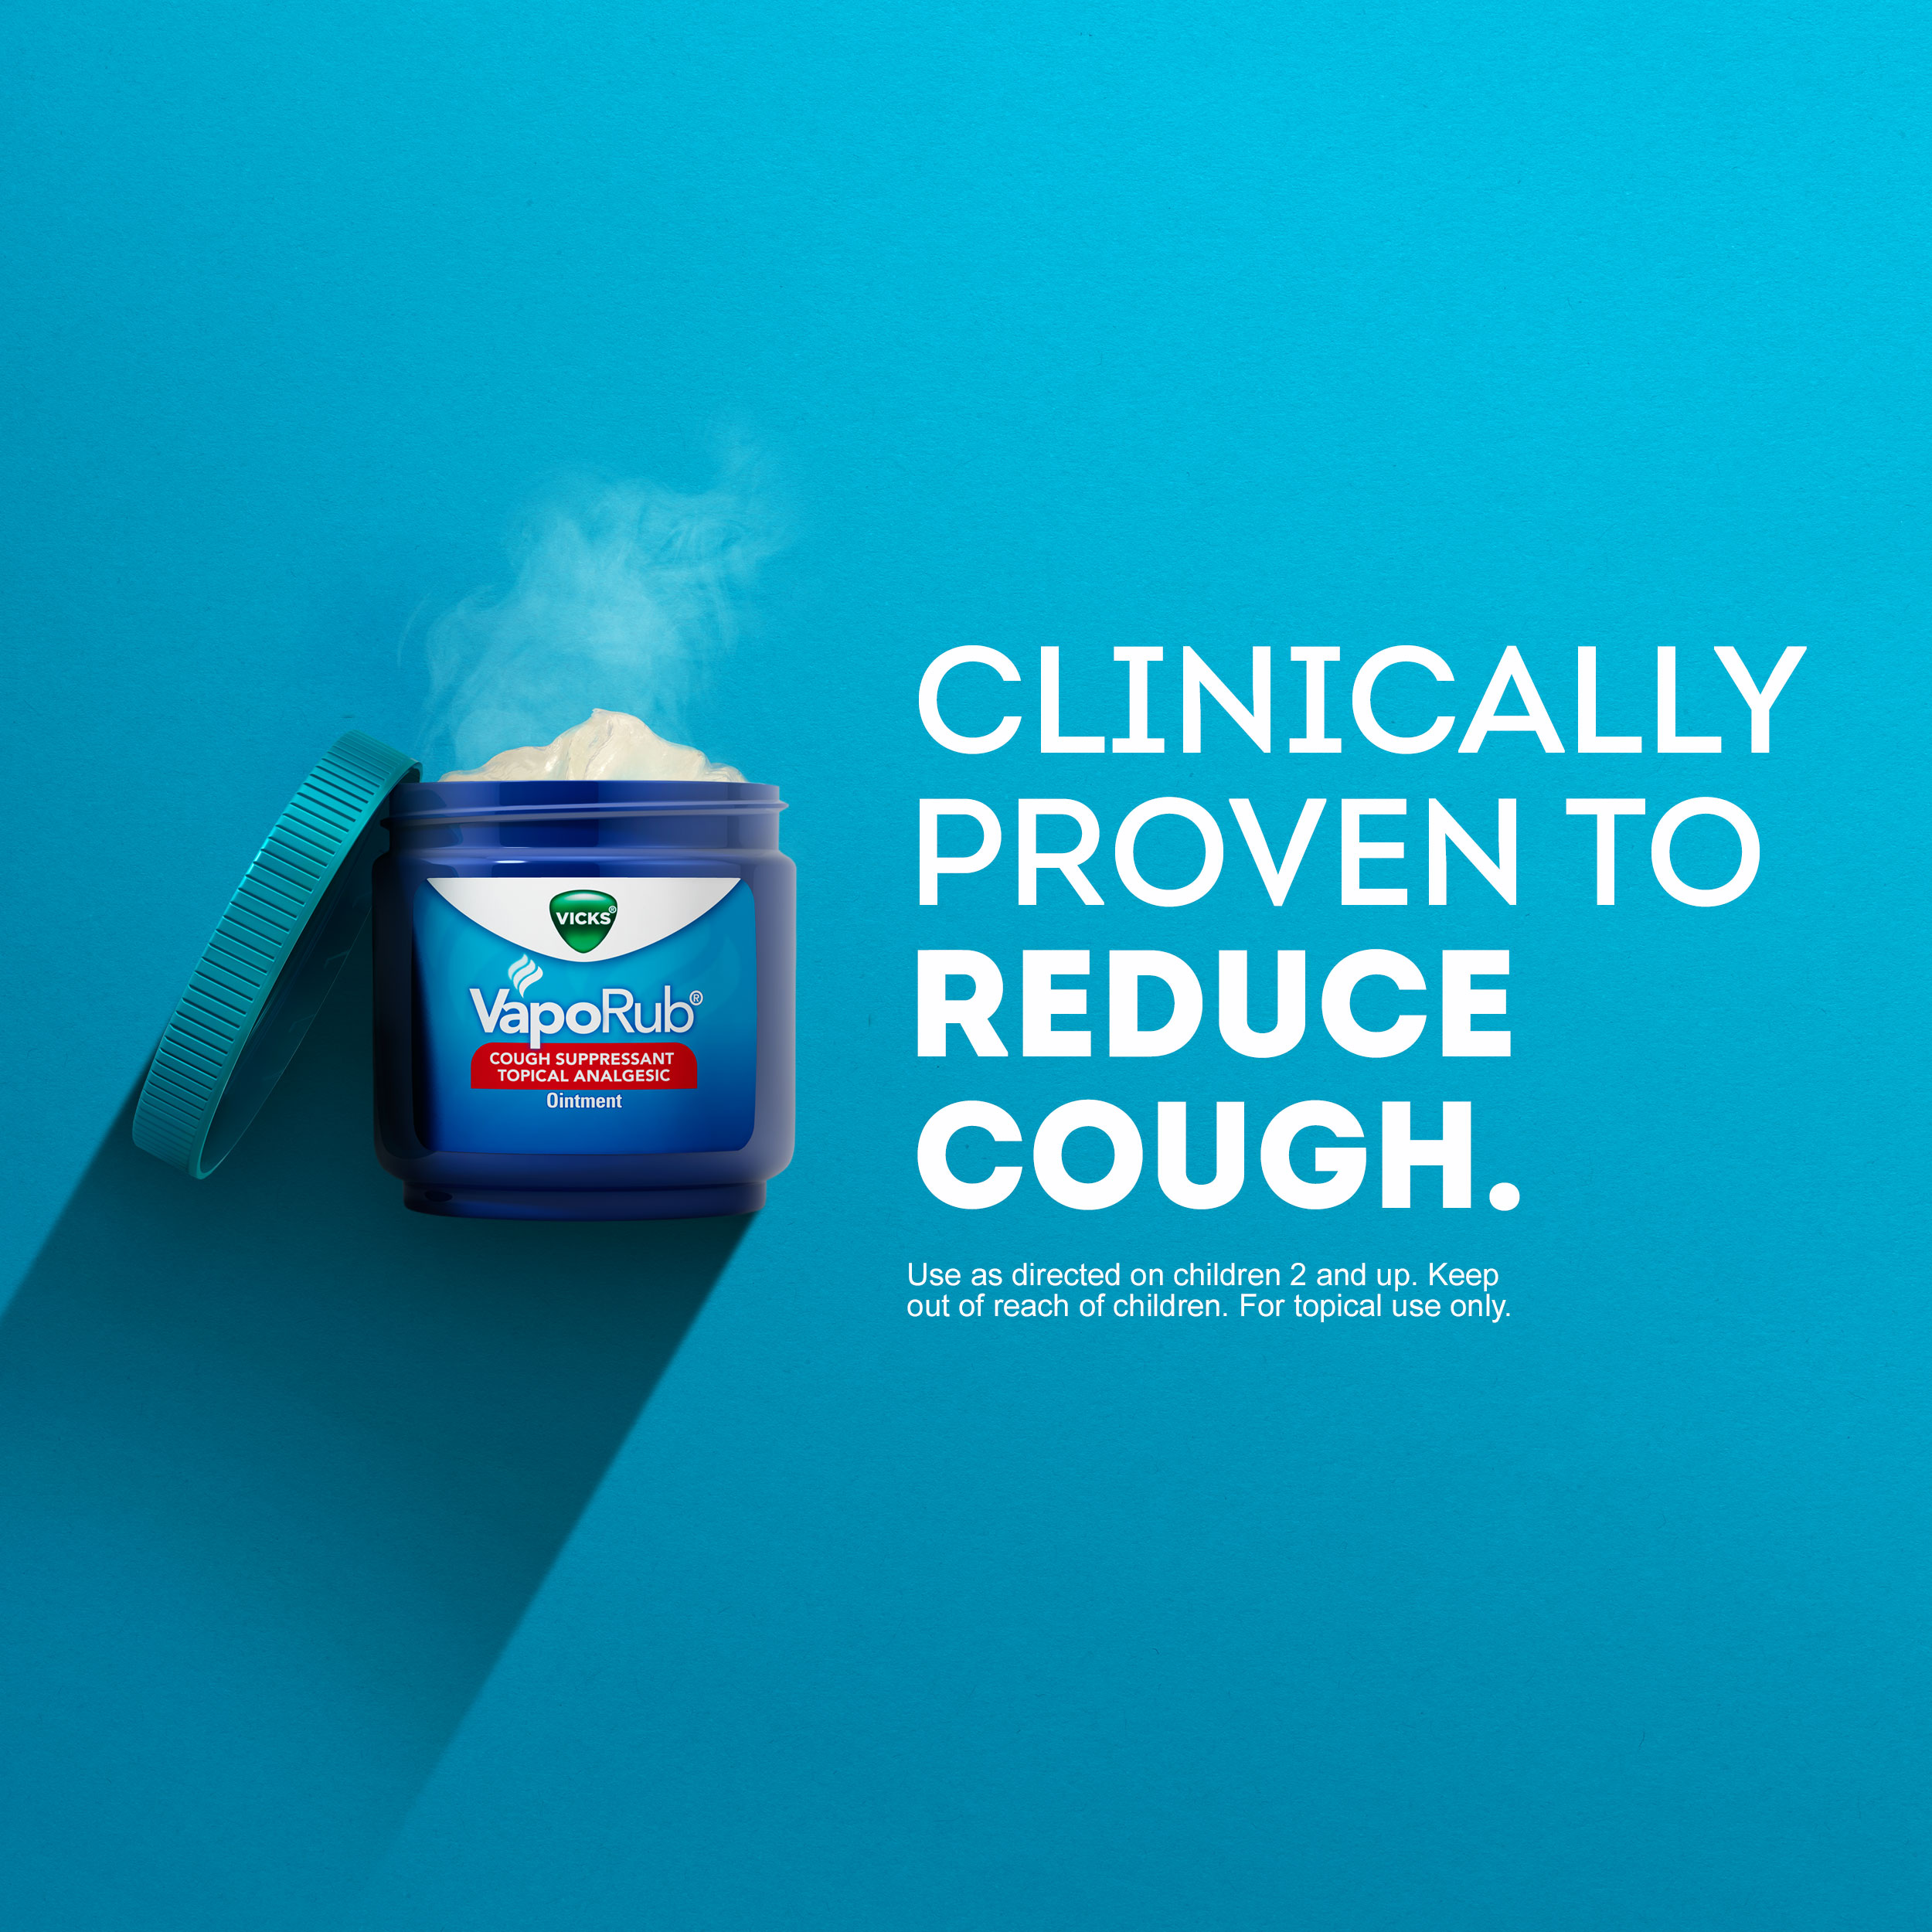 Vicks VapoRub Original Cough Suppressant Topical Analgesic Ointment 3 53  oz, Best used for relief from cold symptoms, aches, and pains